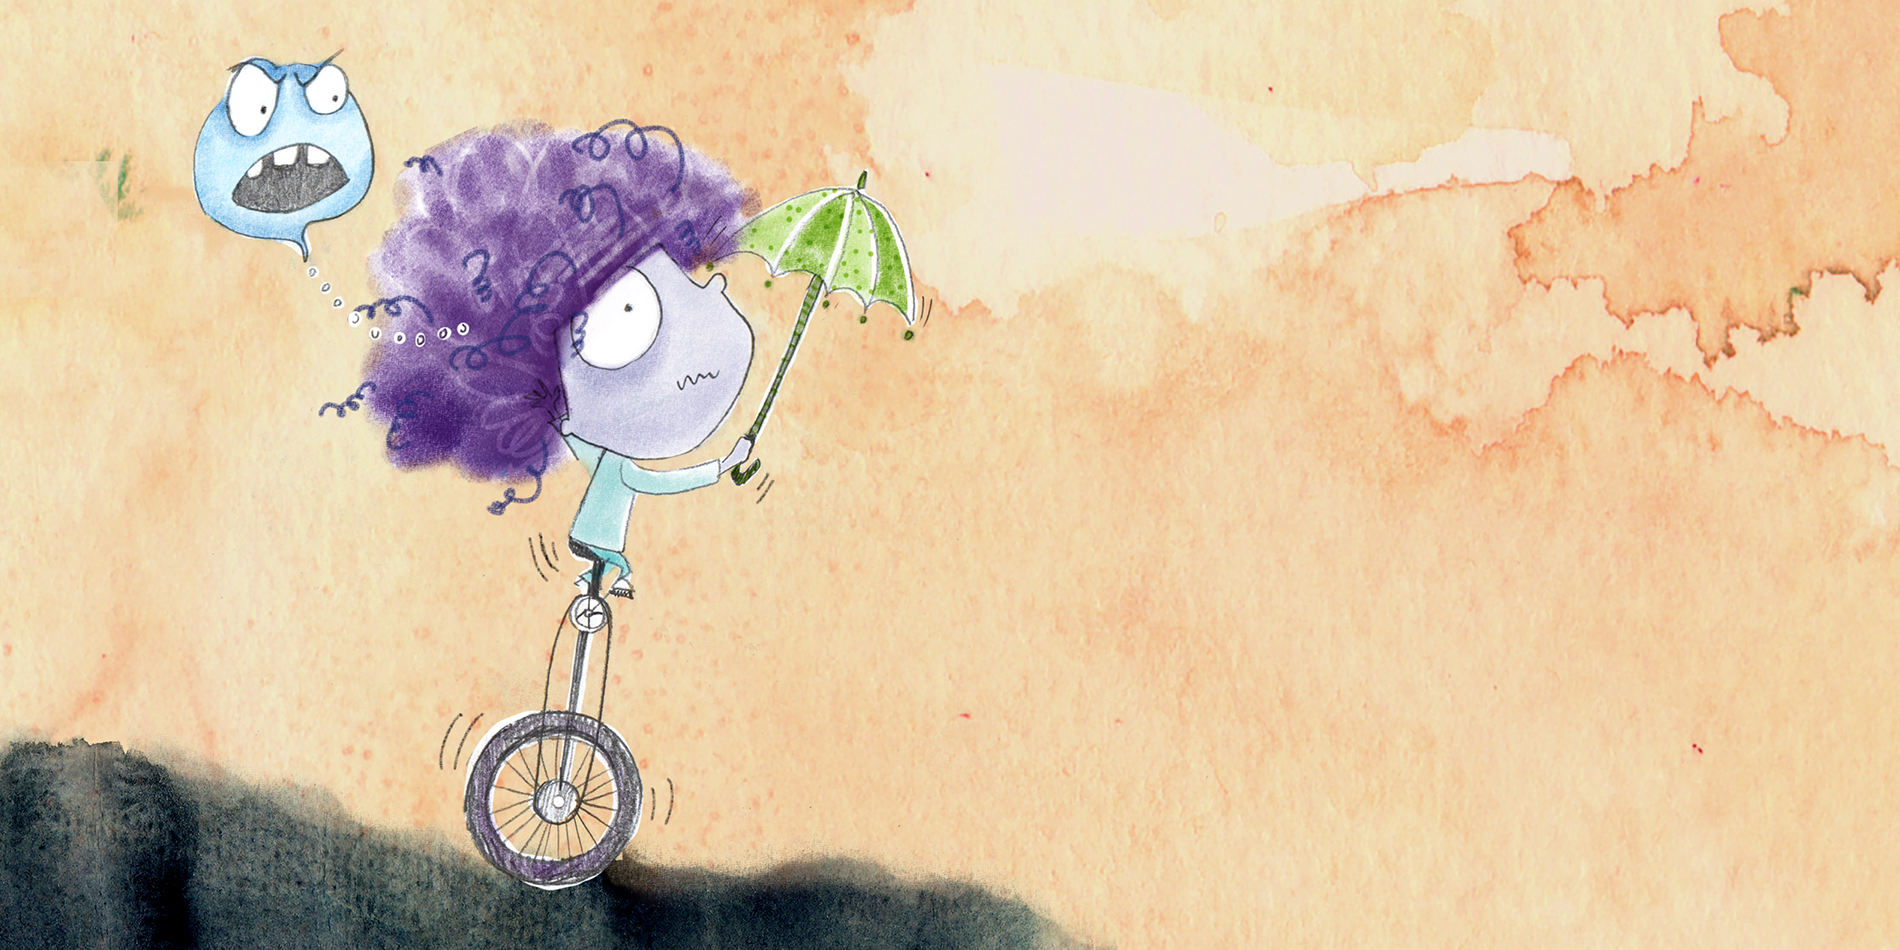 image description: purple kid unicycling